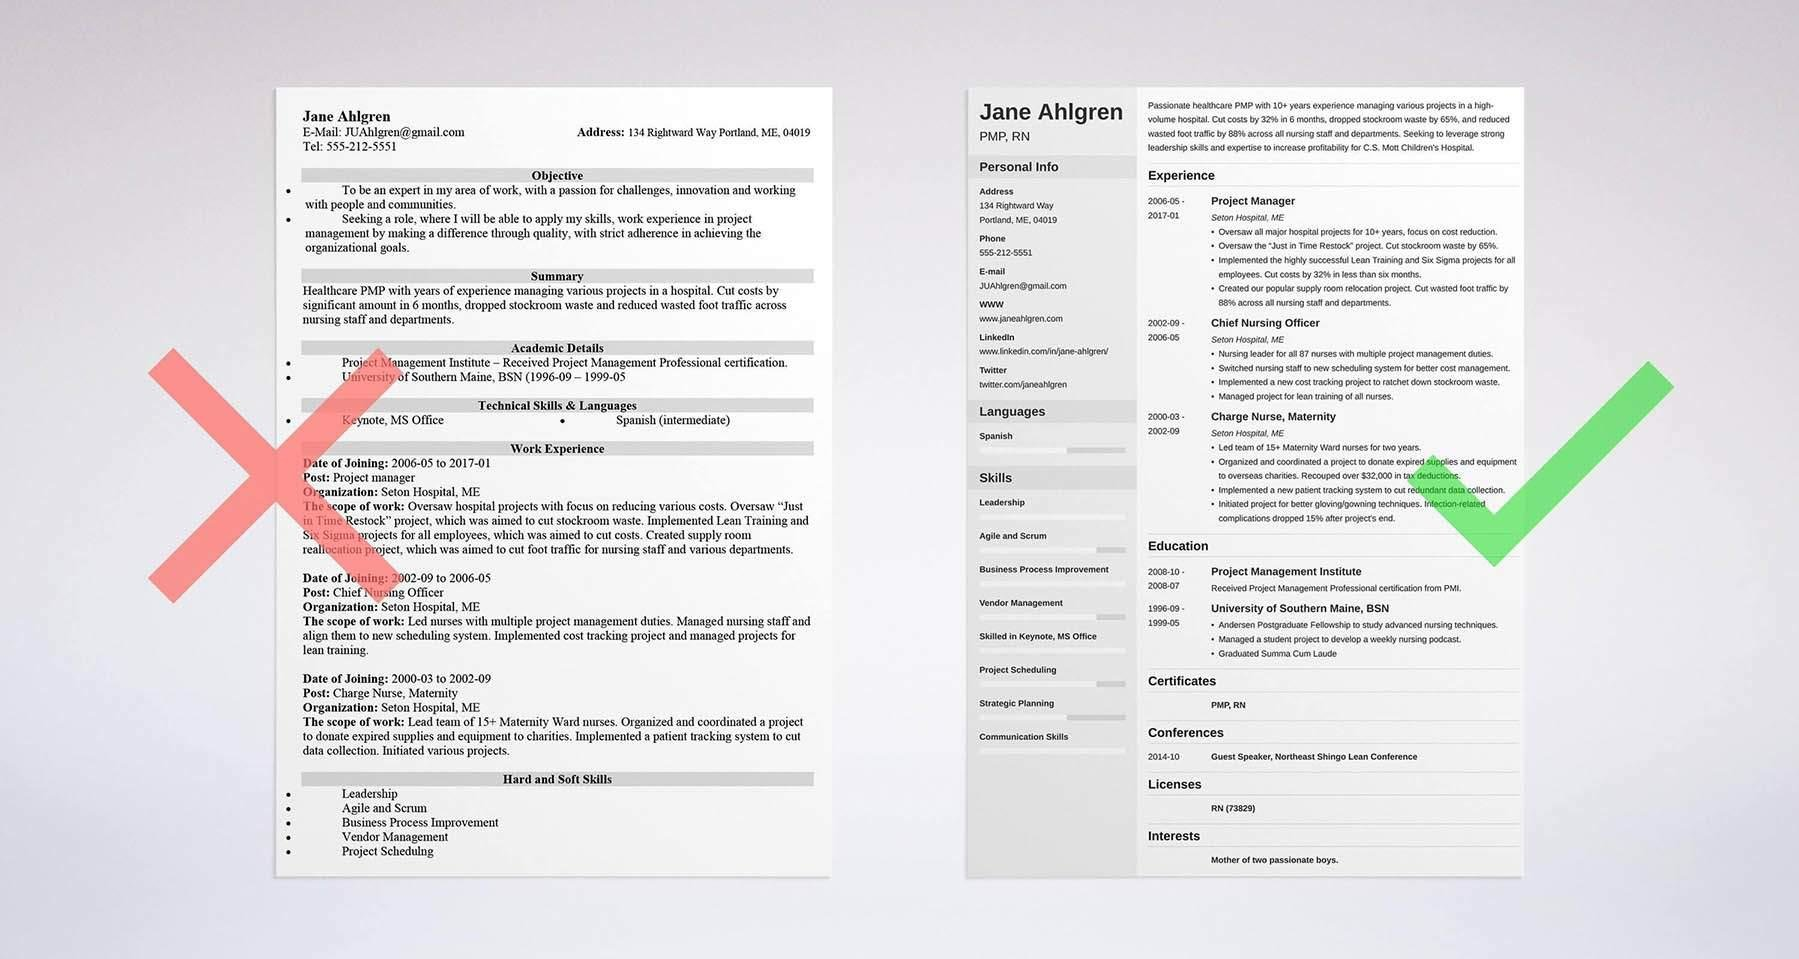 sample resume templates - How To Make A Resume For First Job